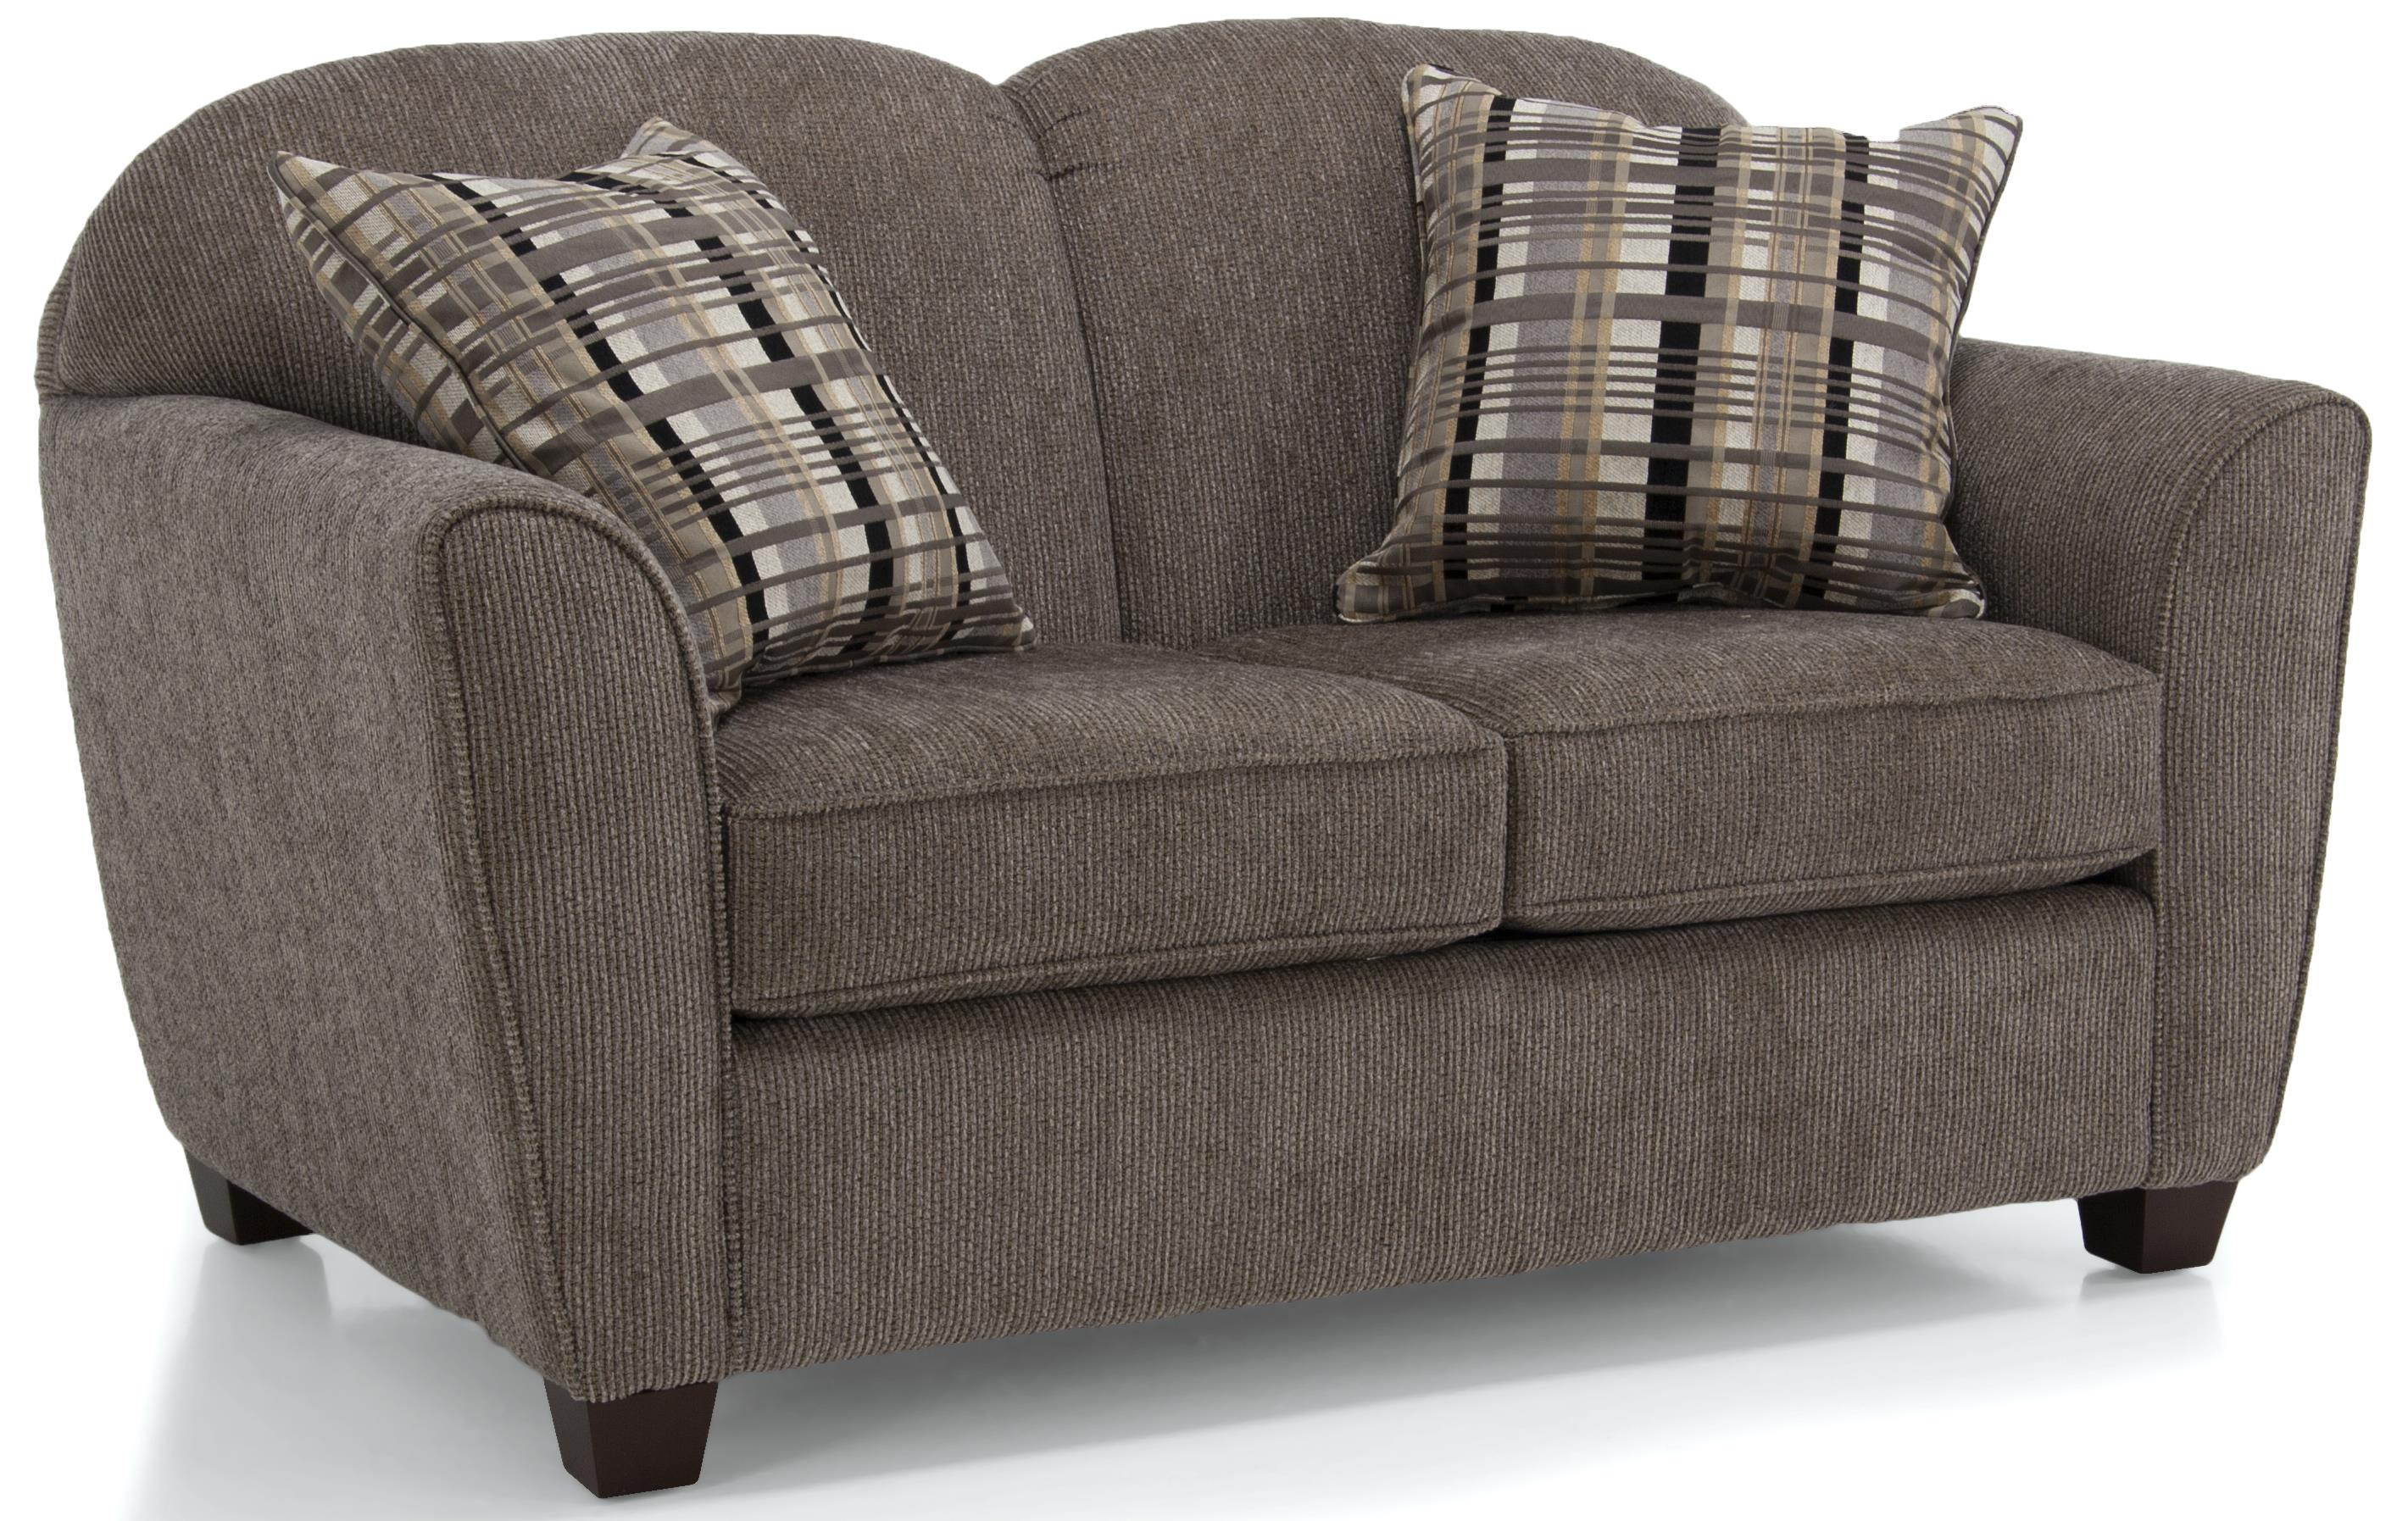 2317 Loveseat by Taelor Designs at Bennett's Furniture and Mattresses